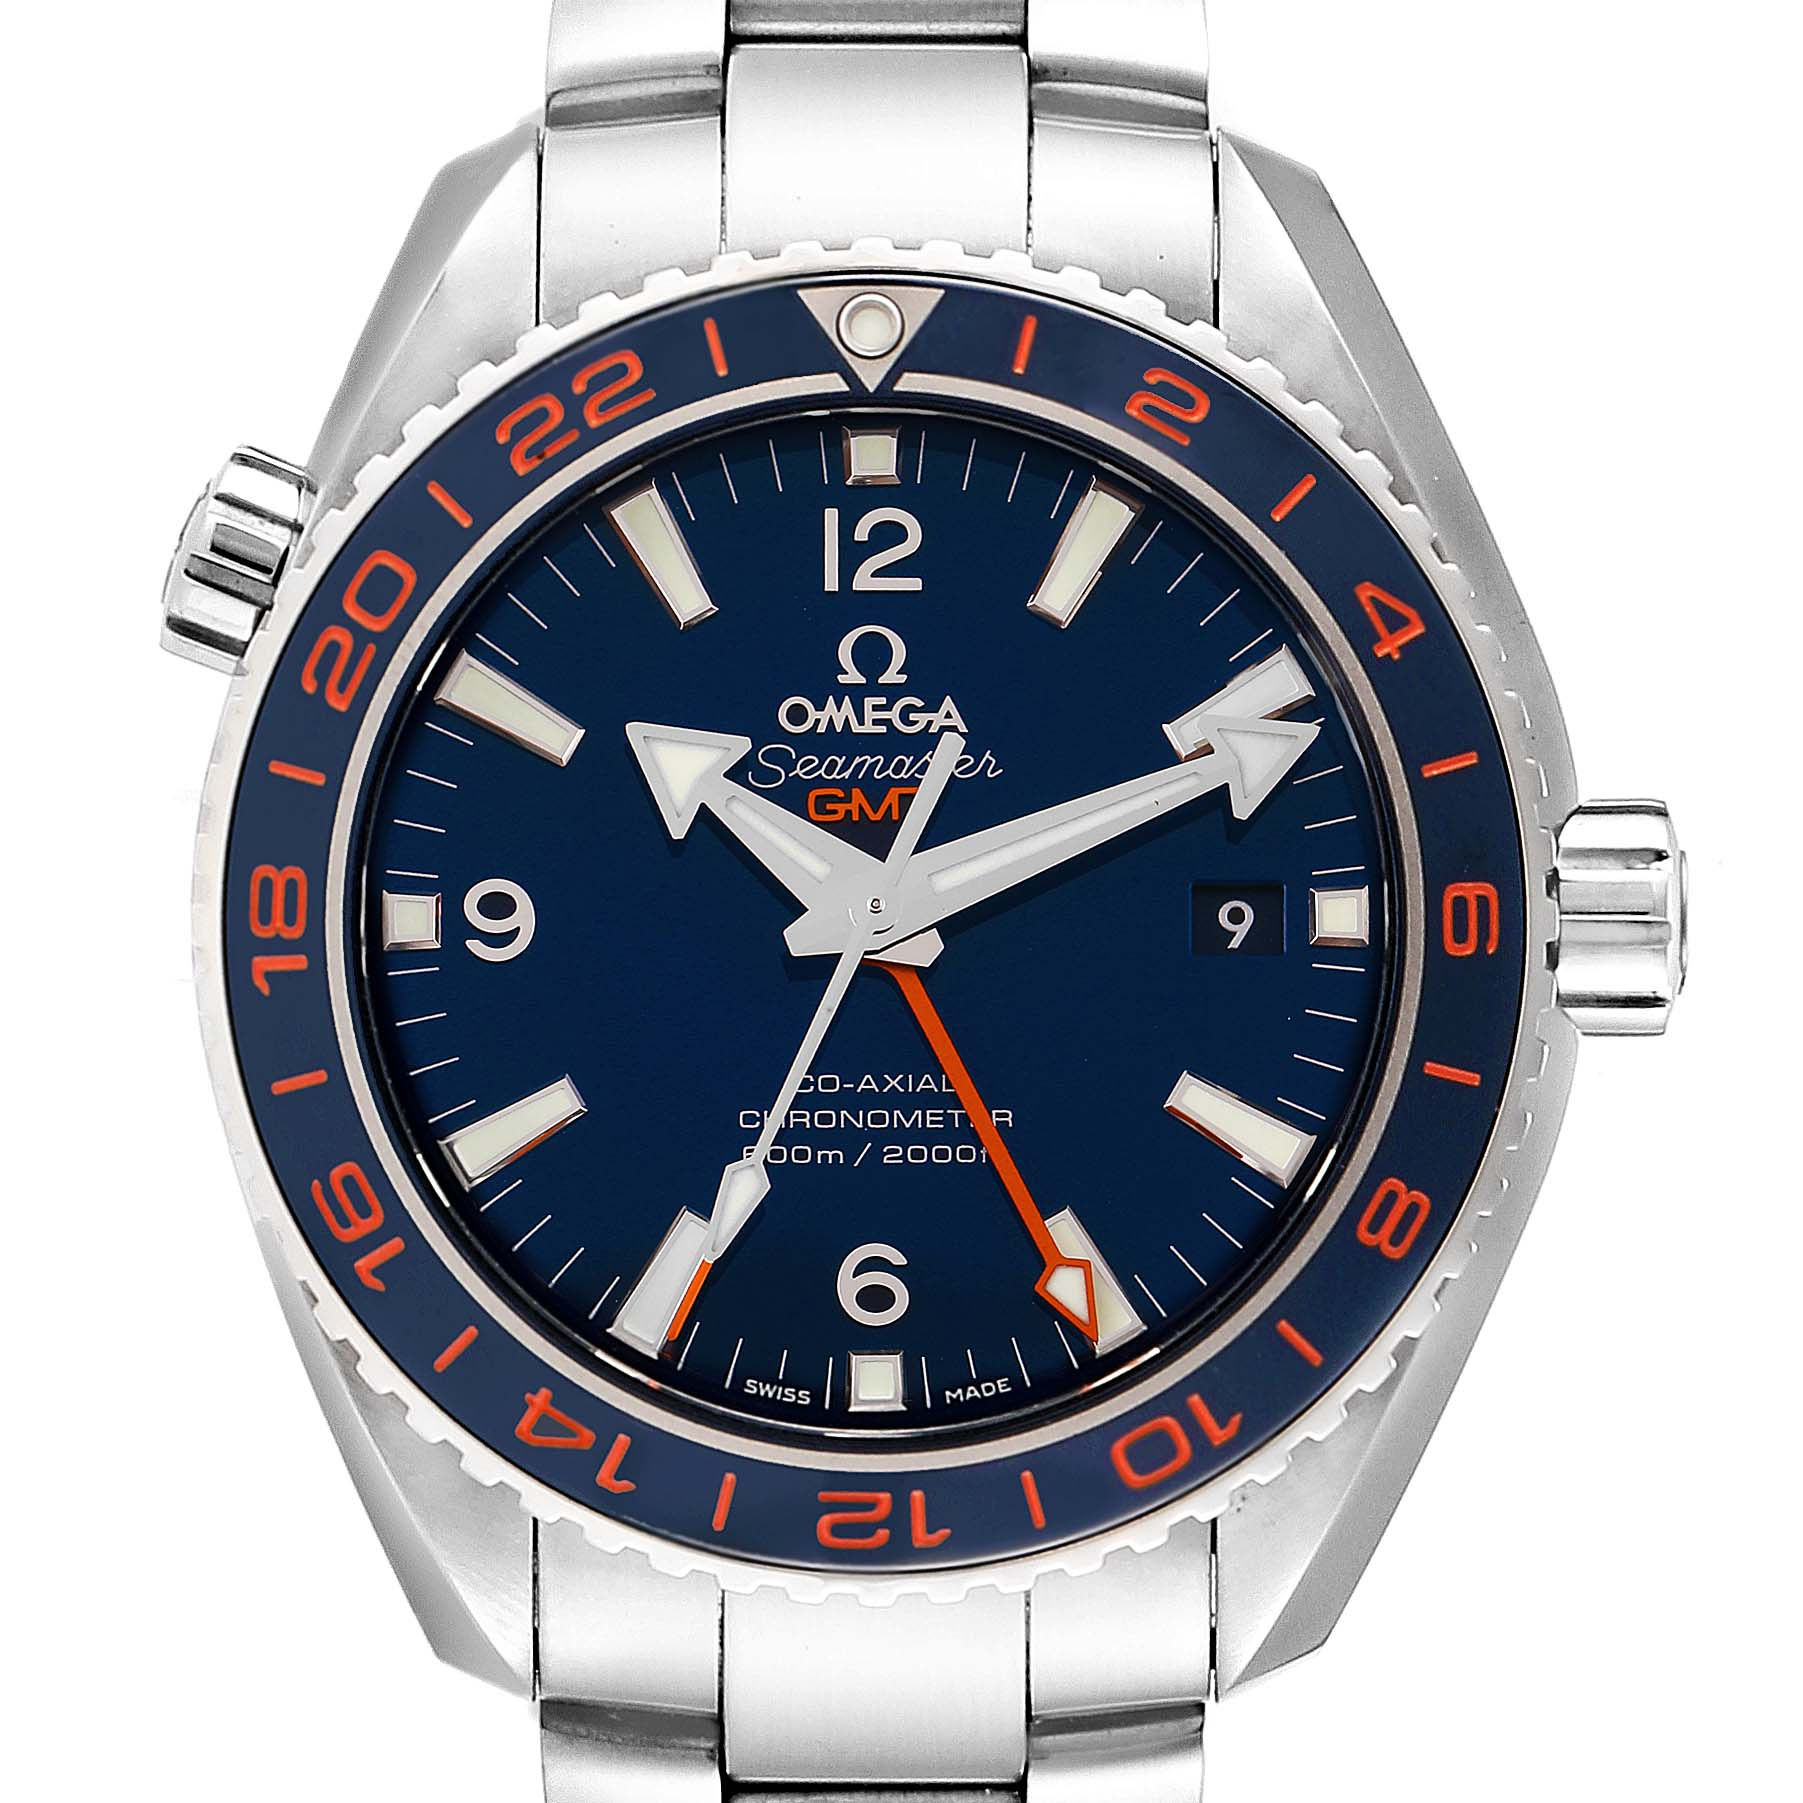 Omega Seamaster Planet Ocean GMT GoodPlanet Mens Watch 232.30.44.22.03.001